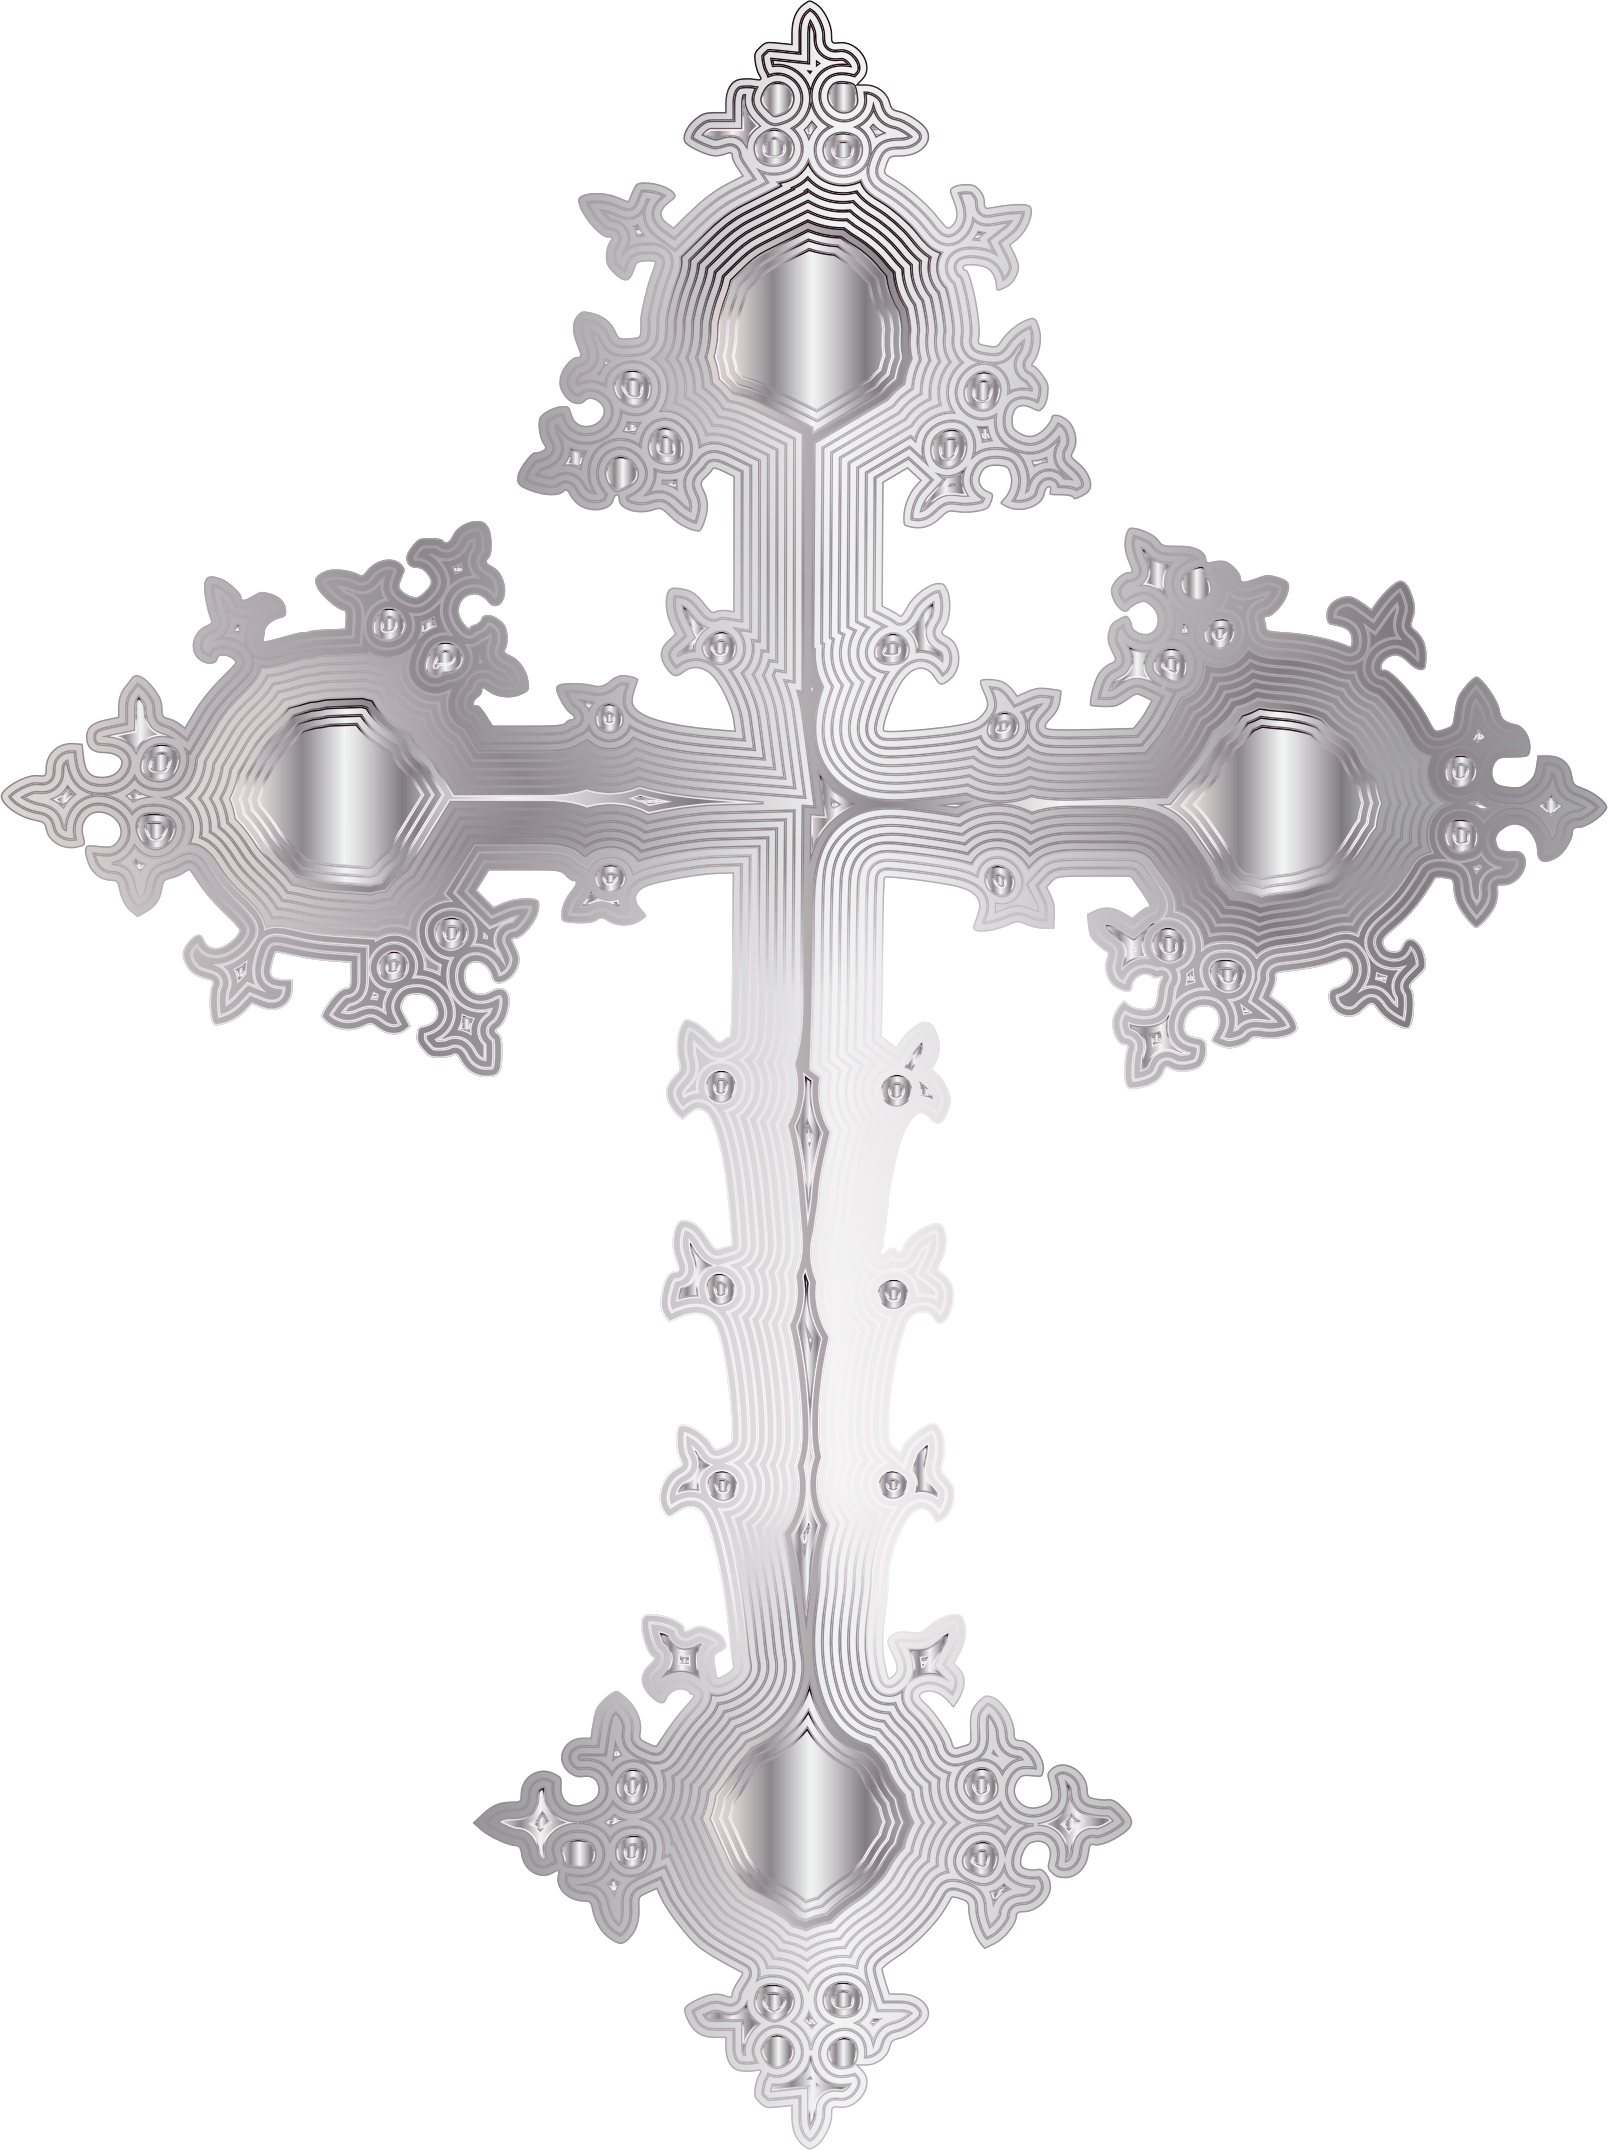 Platinum Ornate Cross No Background by GDJ